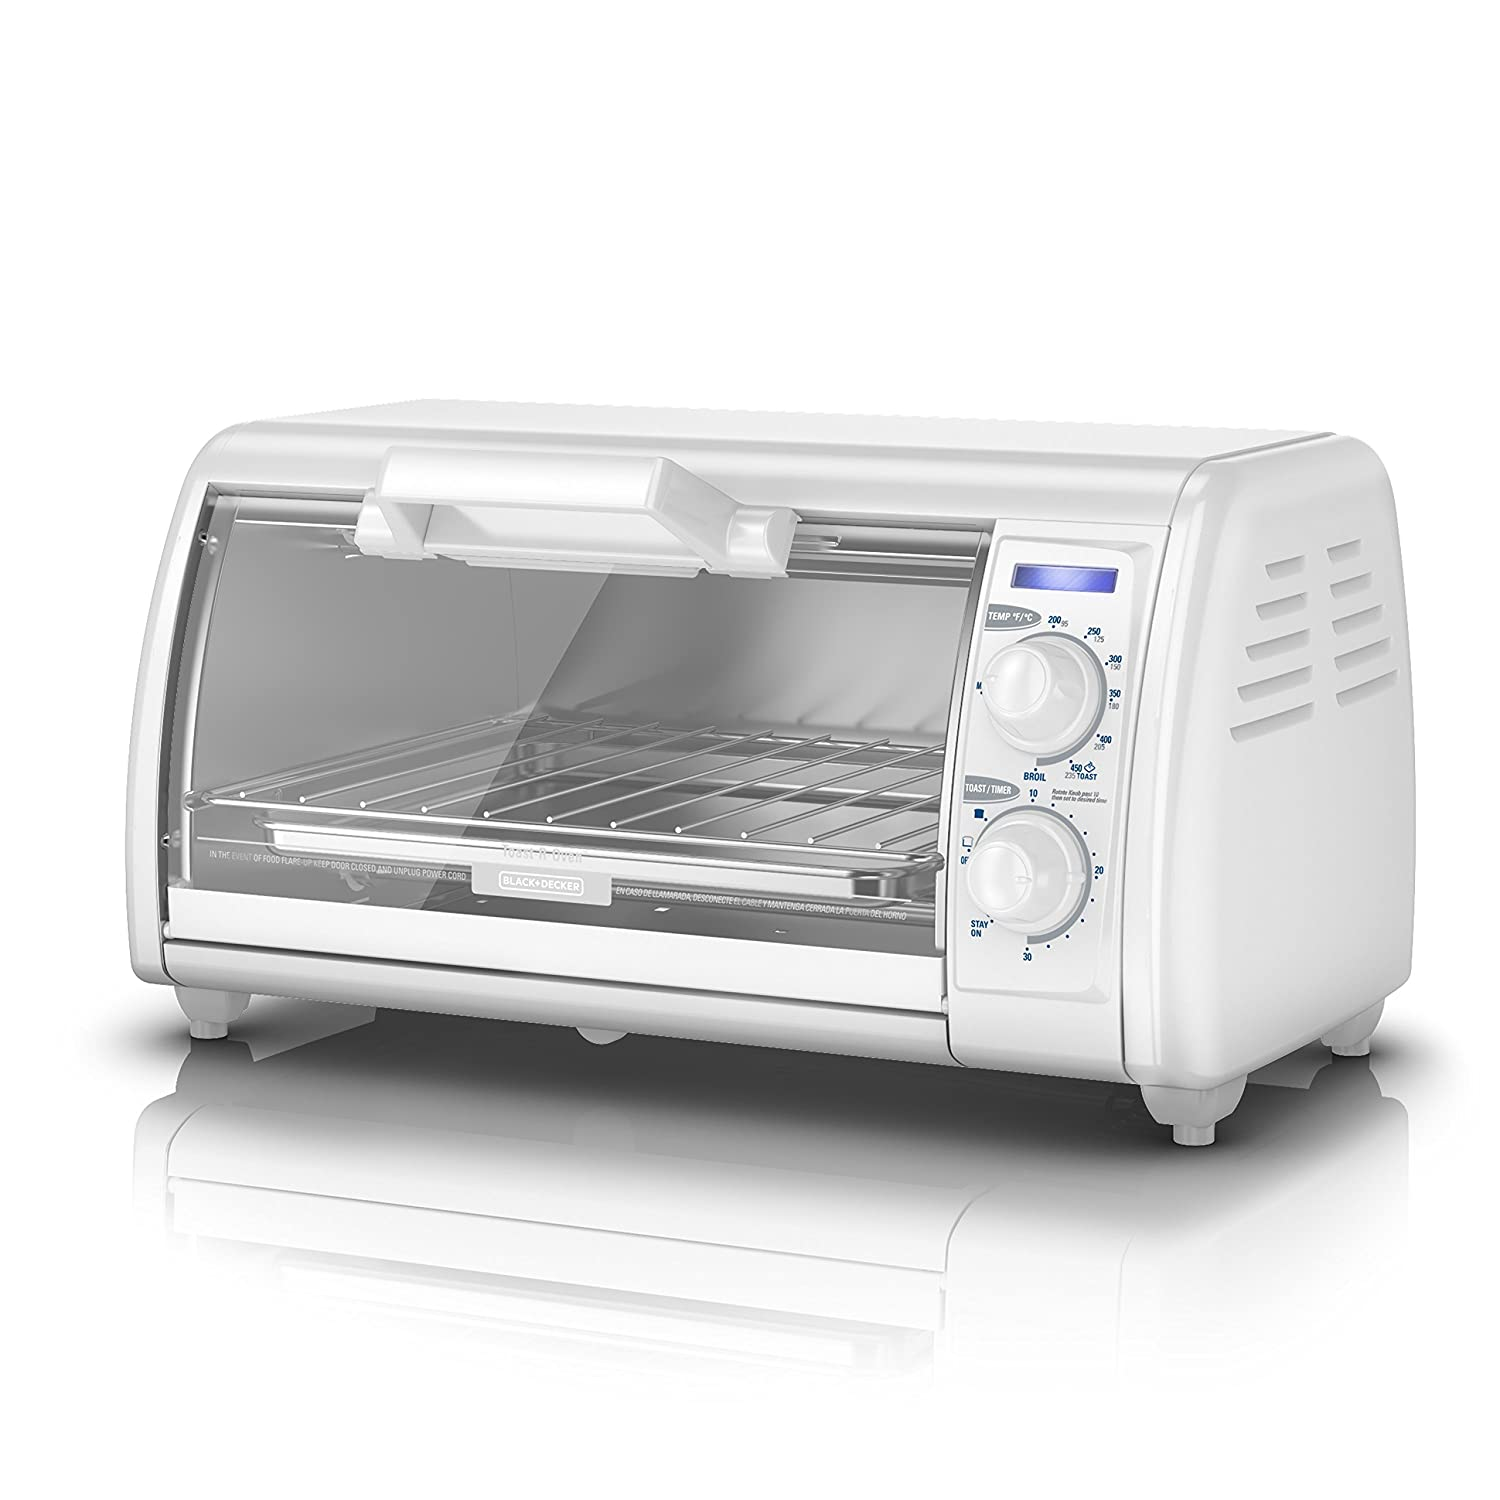 spacemaker of toaster oven under cabinet photos black decker and